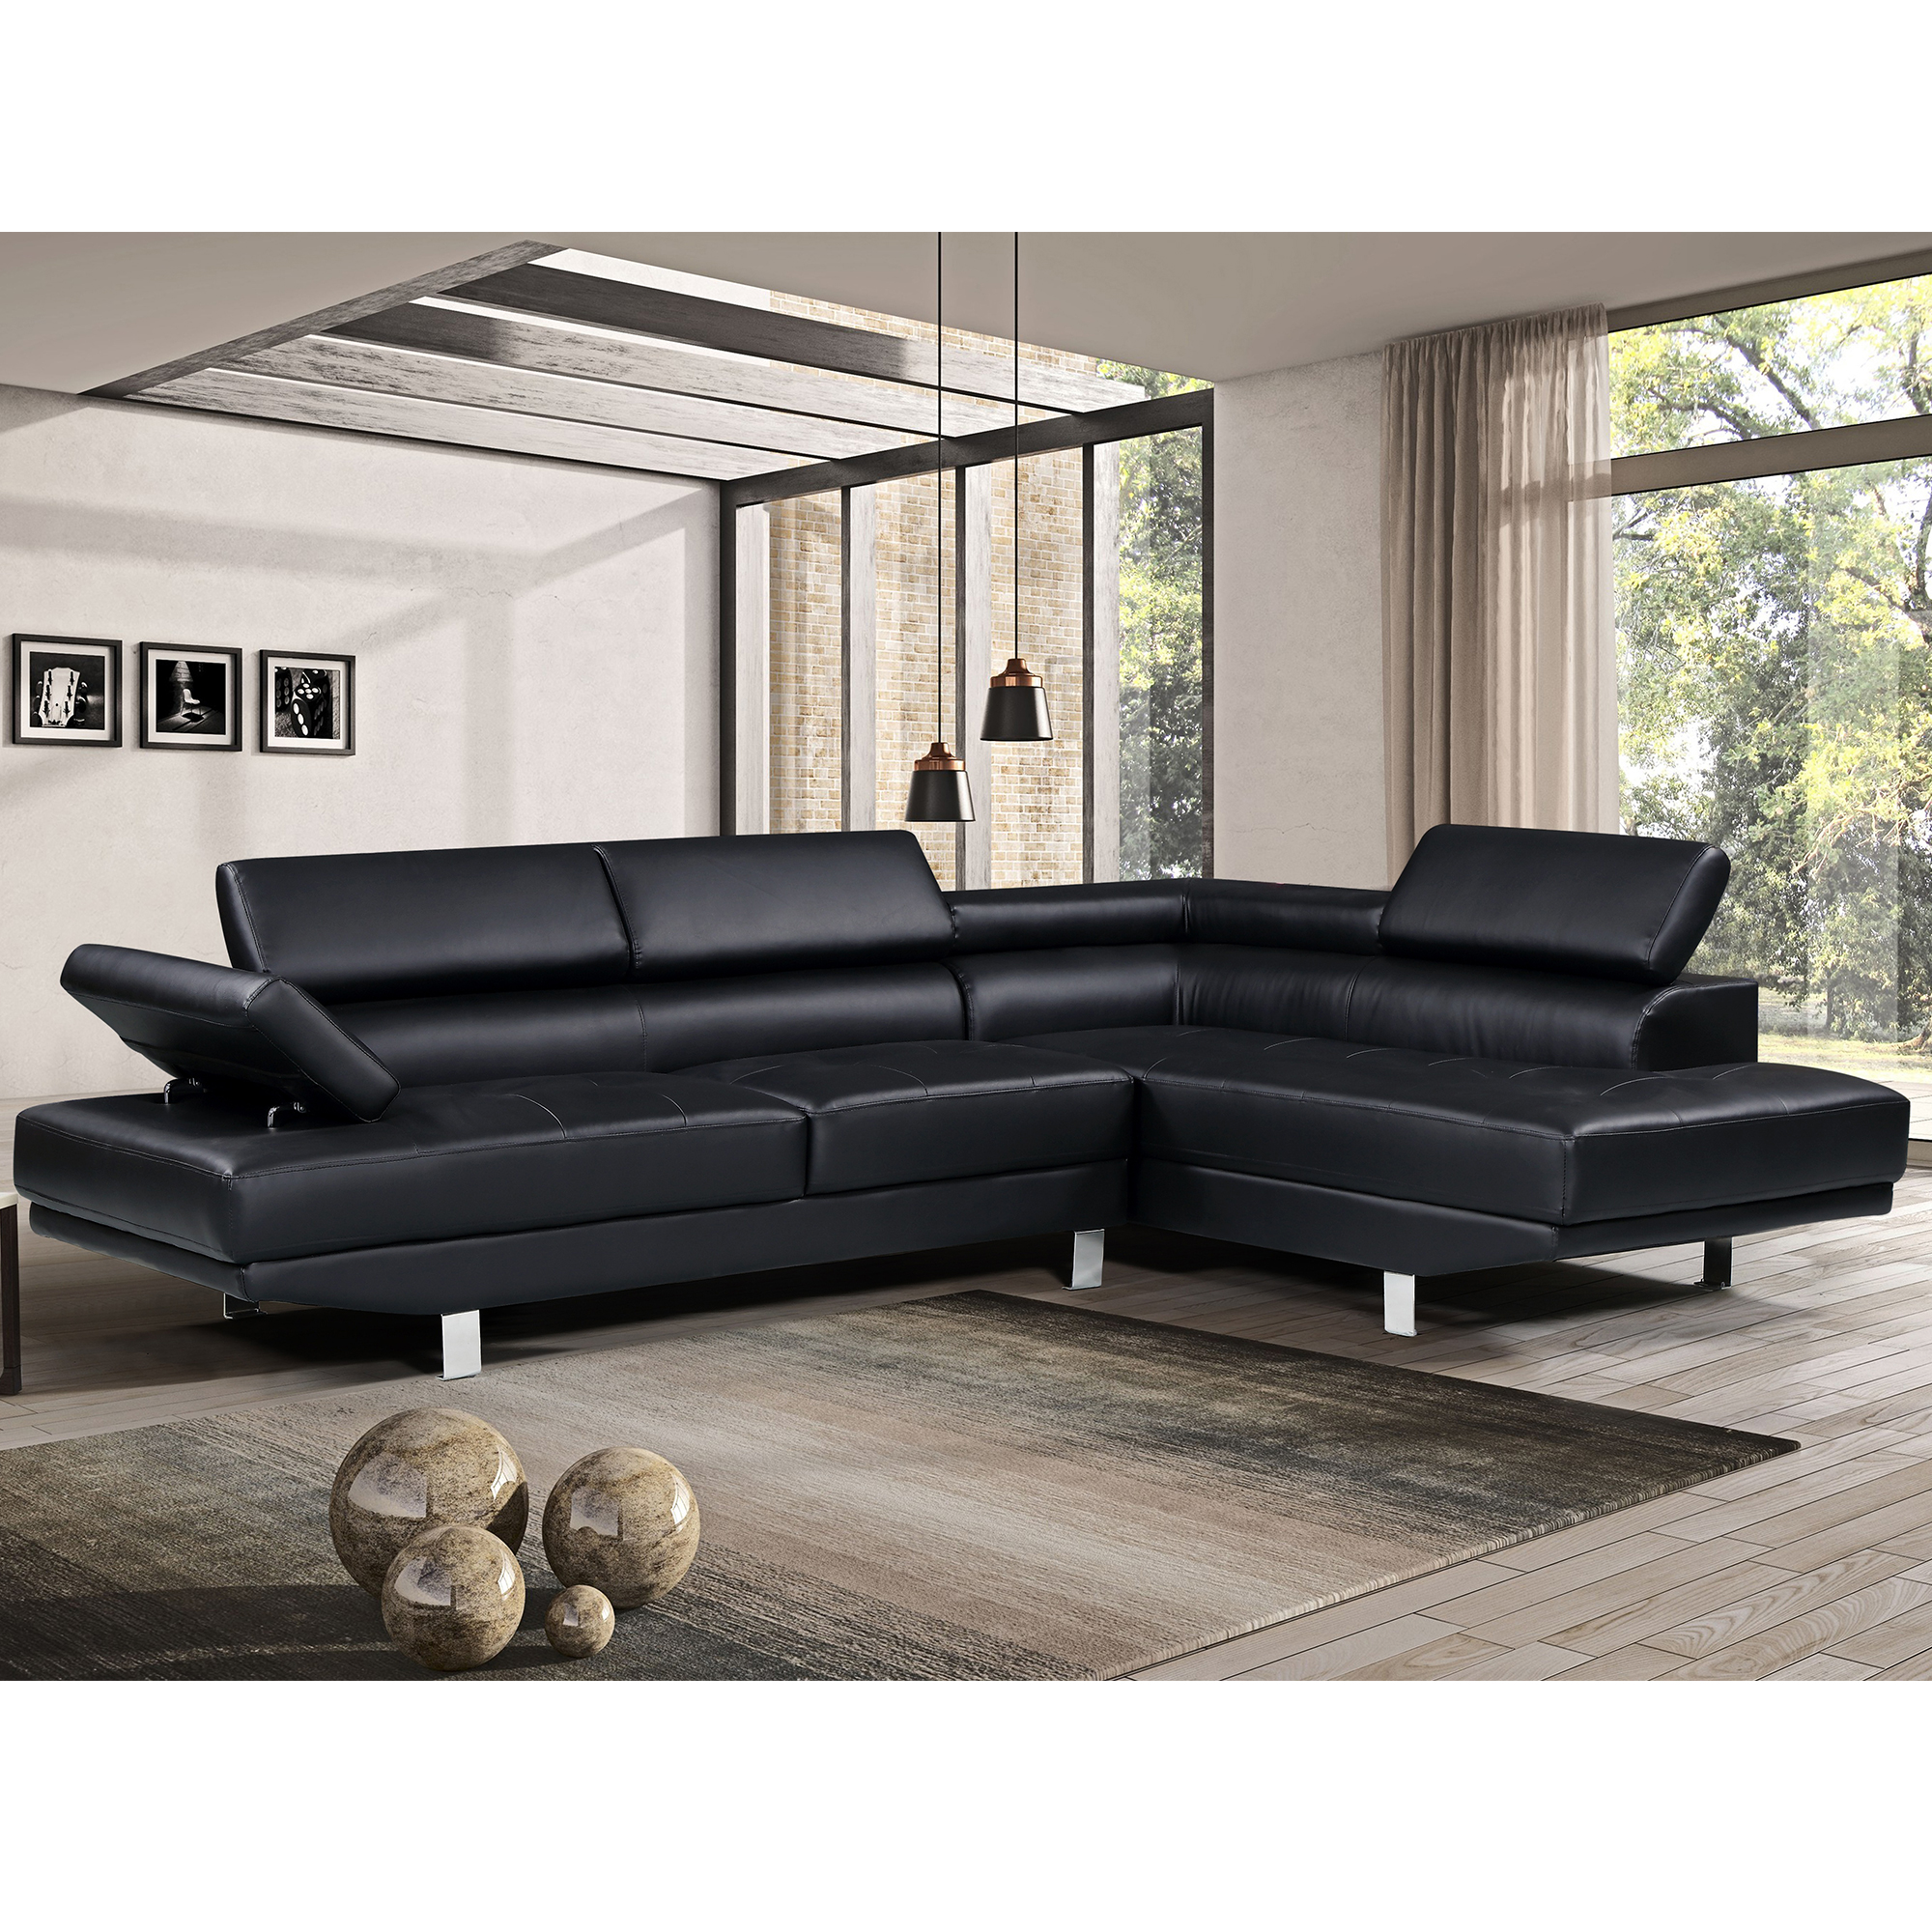 Faux Leather Sofa In A Box Harper Bright Designs Modern Faux Leather Sectional Sofa With Adjustable Headrest And Functional Armrest